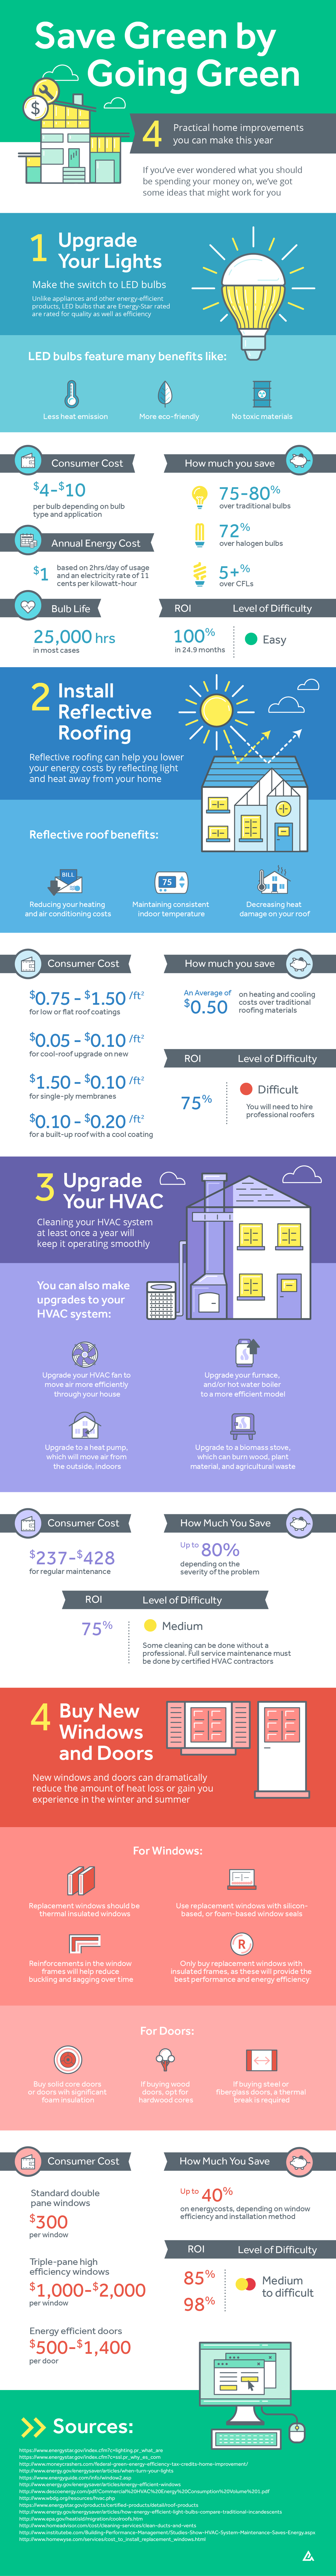 4 Changes To Make To Your Home This Year